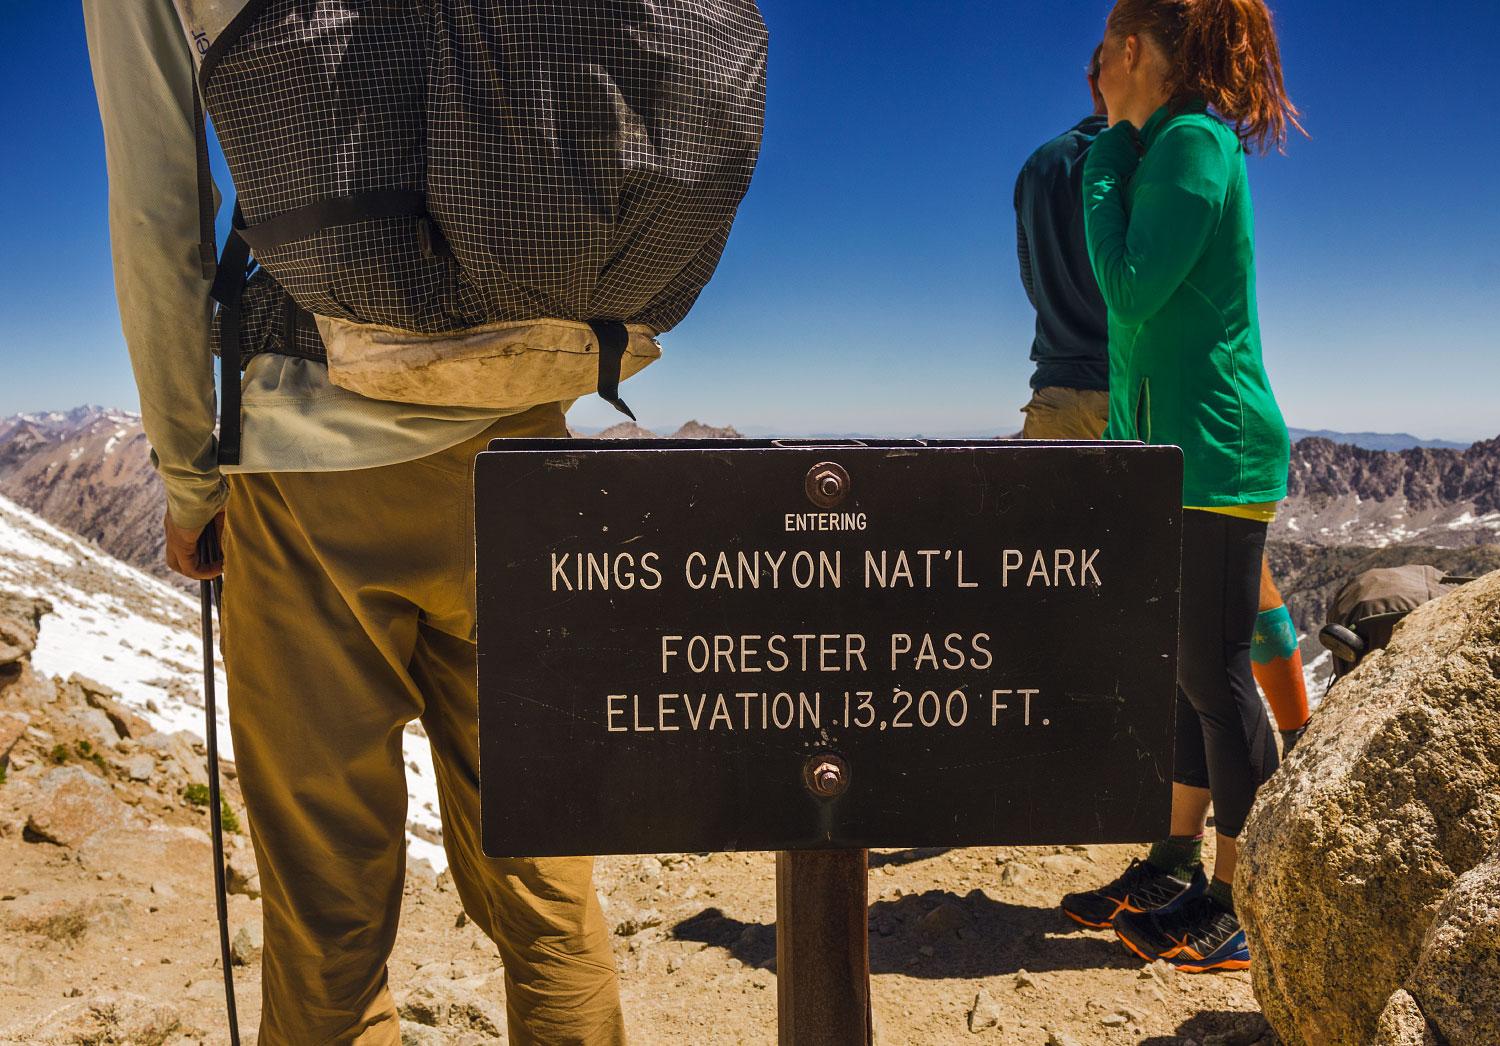 Forester Pass and the Kings Canyon and Sequoia National Parks boundary, mile 779.5.